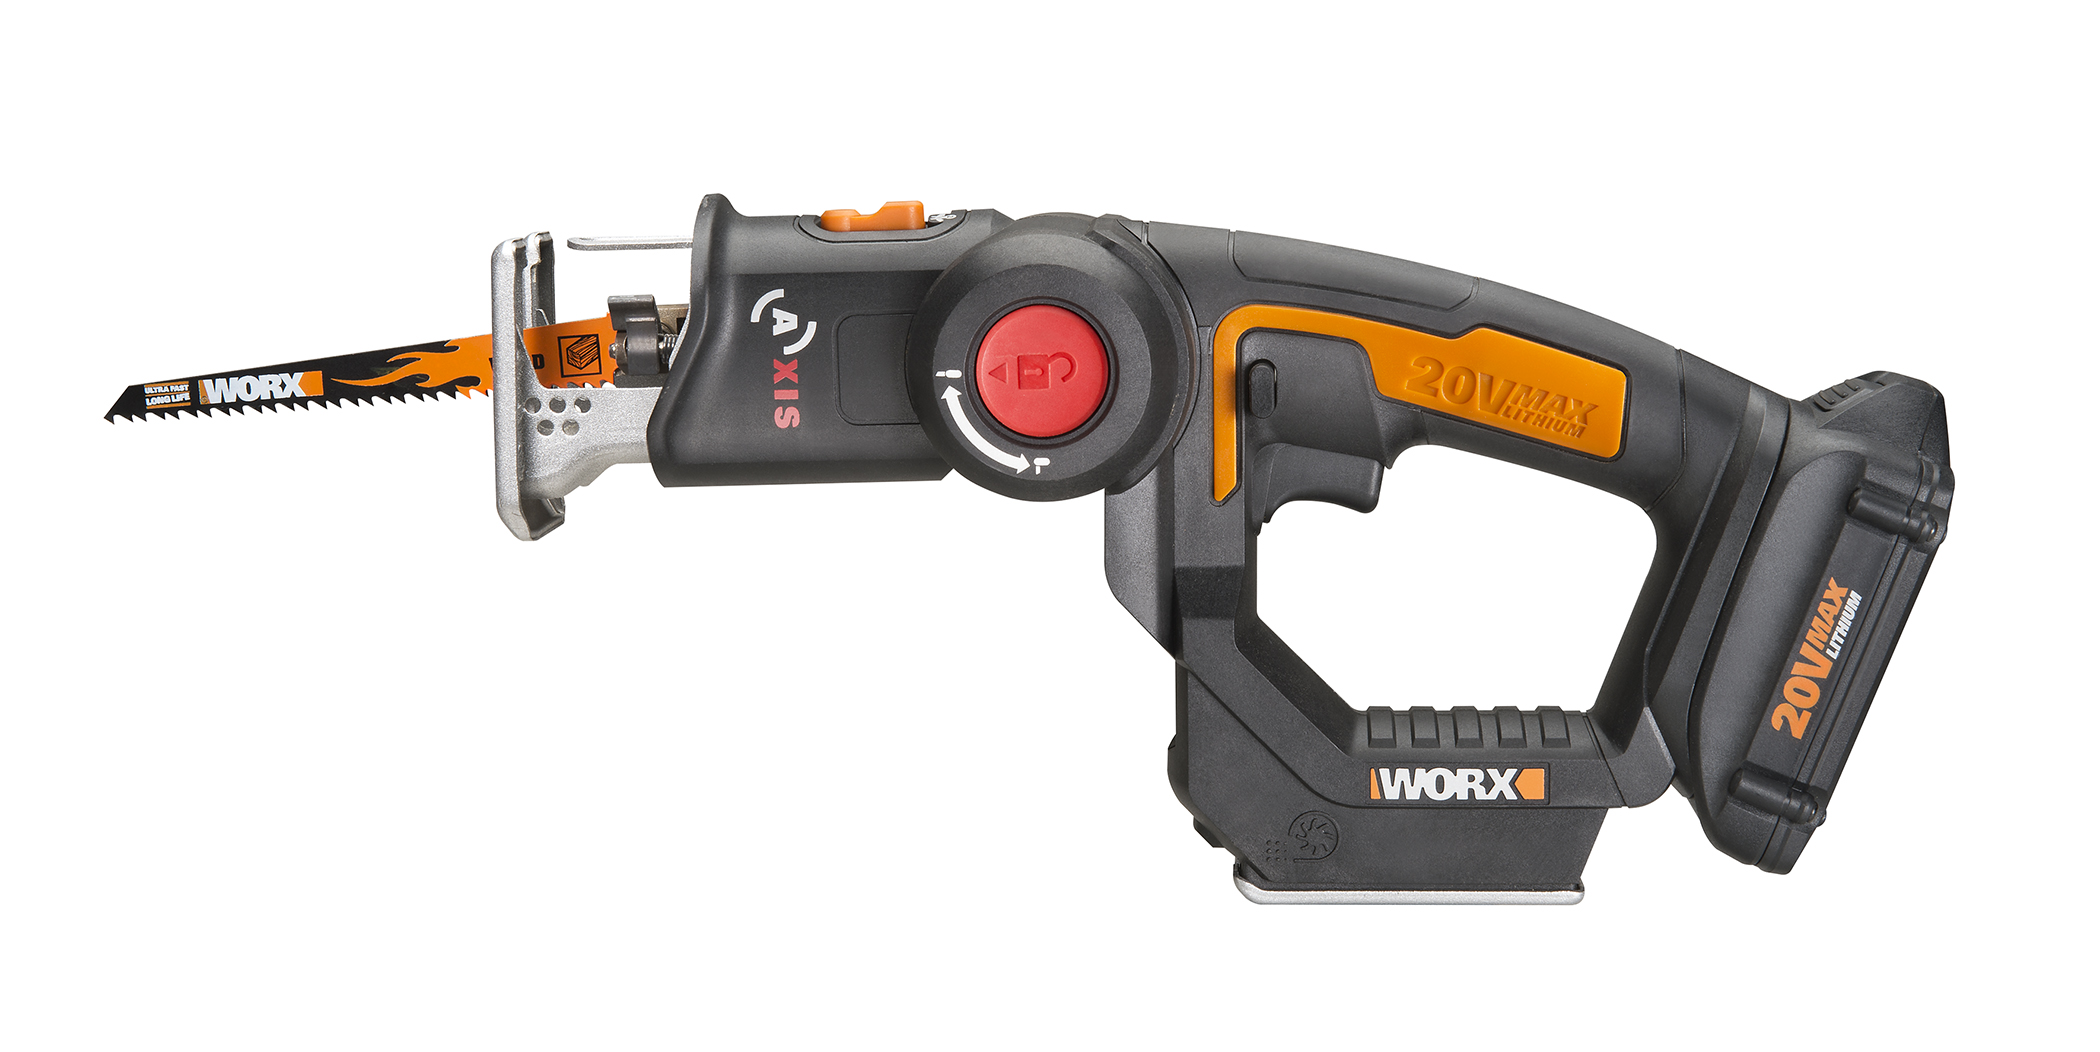 Worx 20v axis combines a recip saw and jigsaw into one tool tool whats neat about the worx axis is that it combines a recip saw and jigsaw into one tool its basically a handle with the motor mount and blade holder and greentooth Gallery